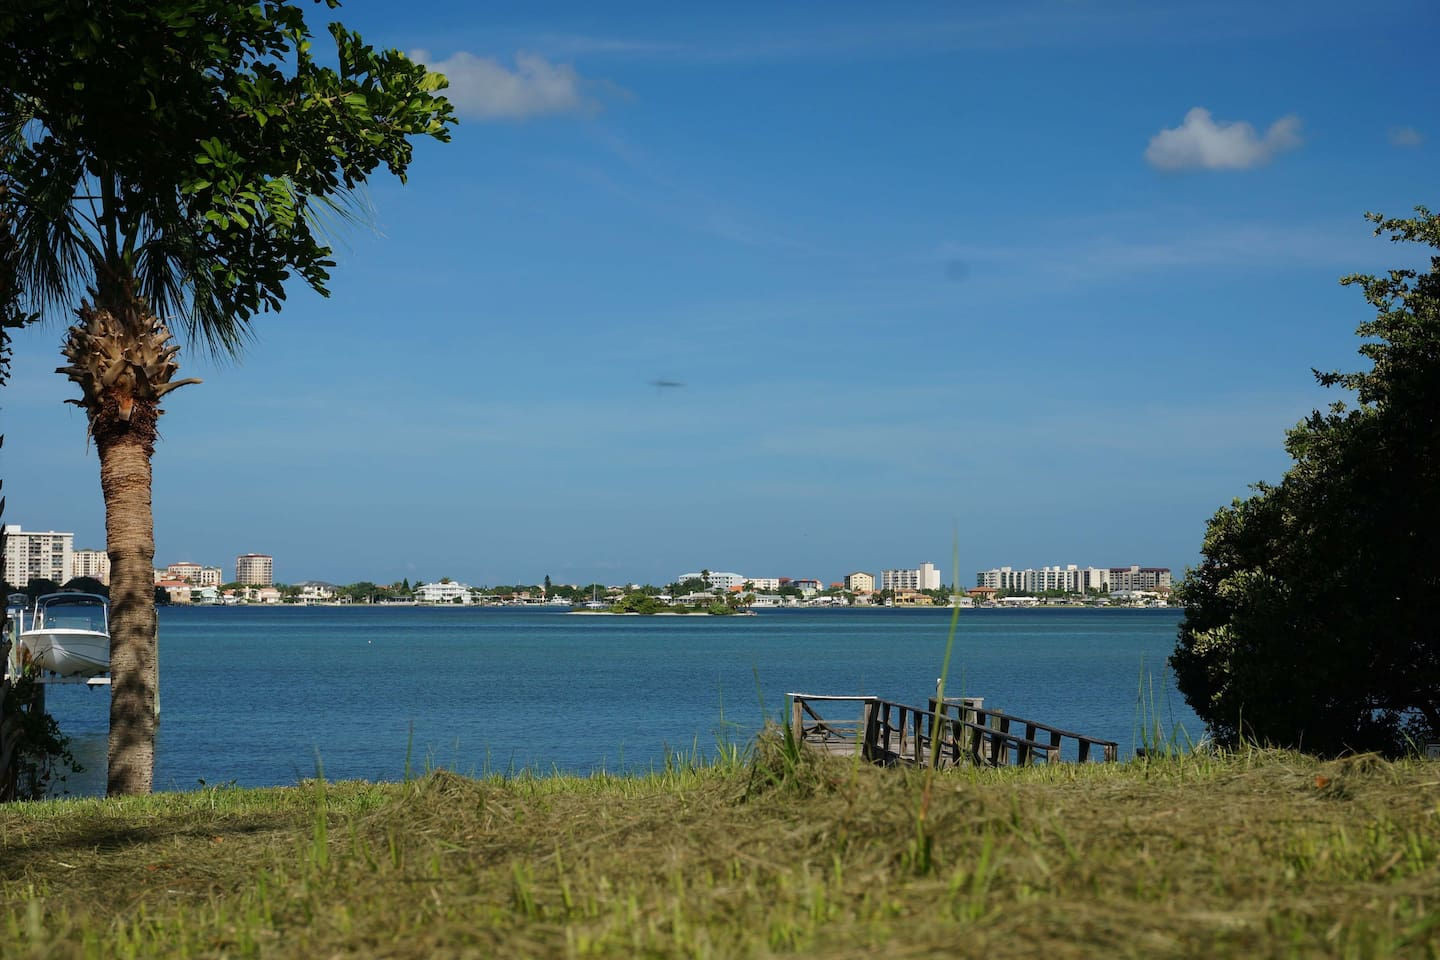 Here's our view over to Clearwater Beach from just across the street